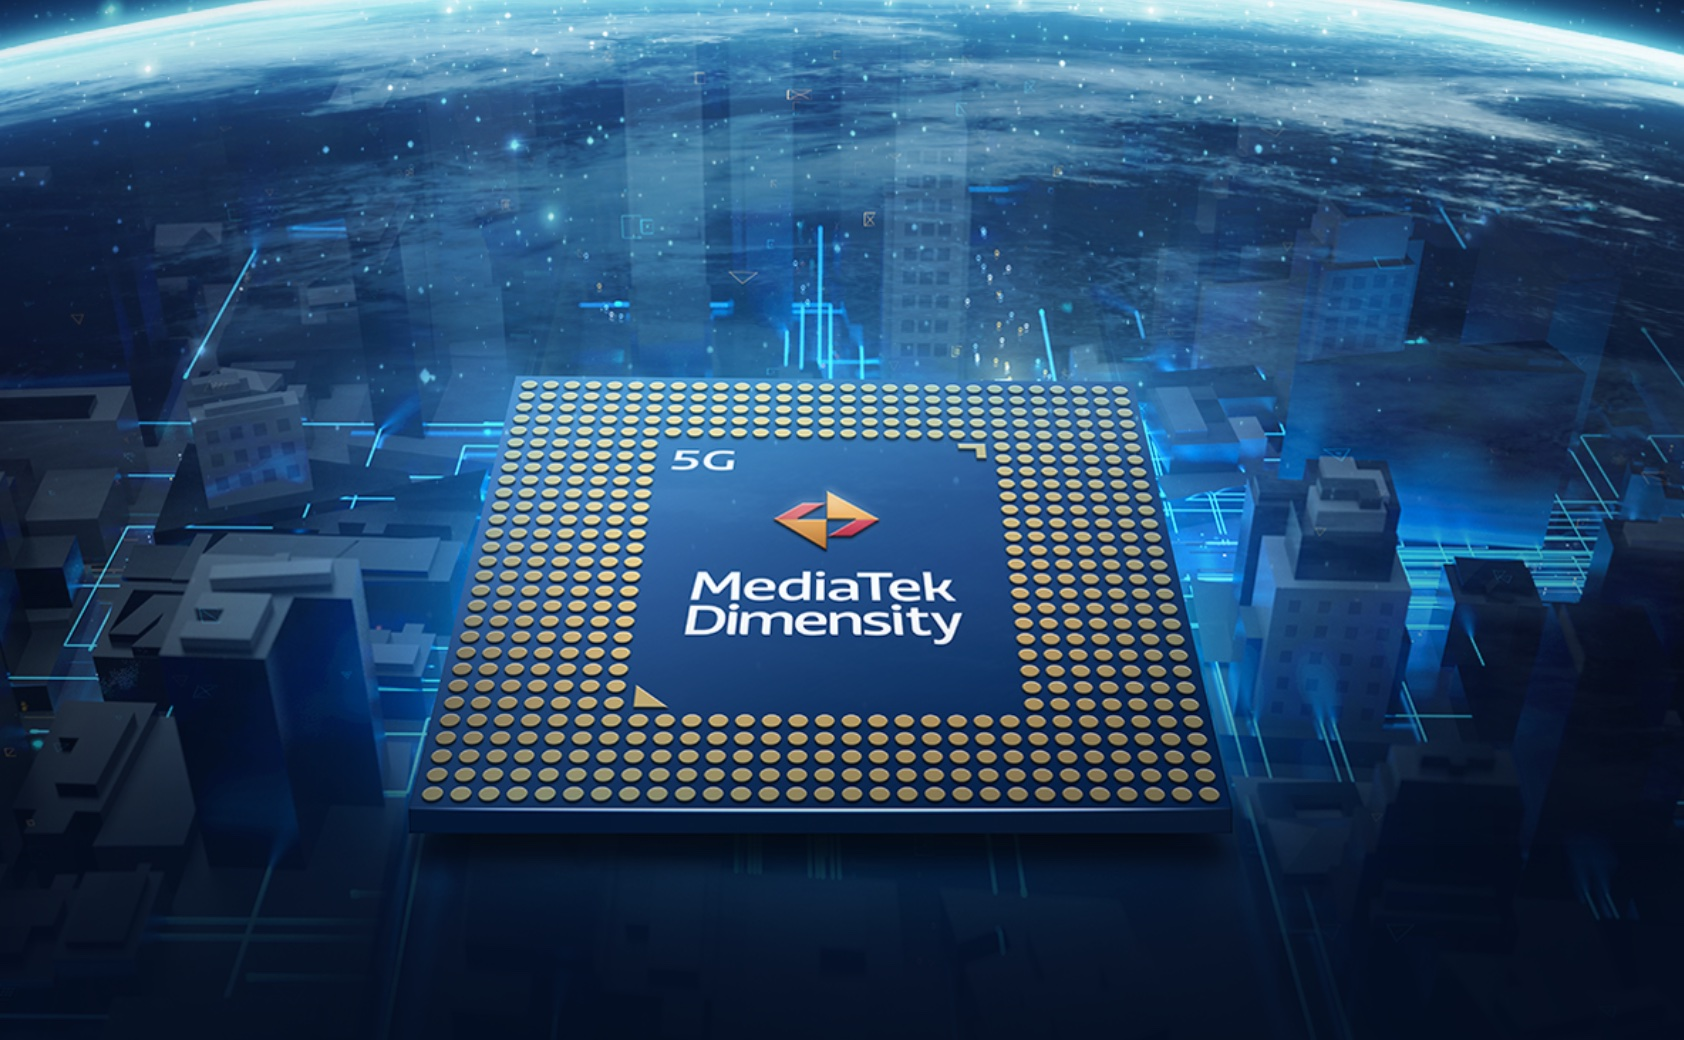 MediaTek overtakes Qualcomm as No. 1 in China's smartphone processor market-cnTechPost